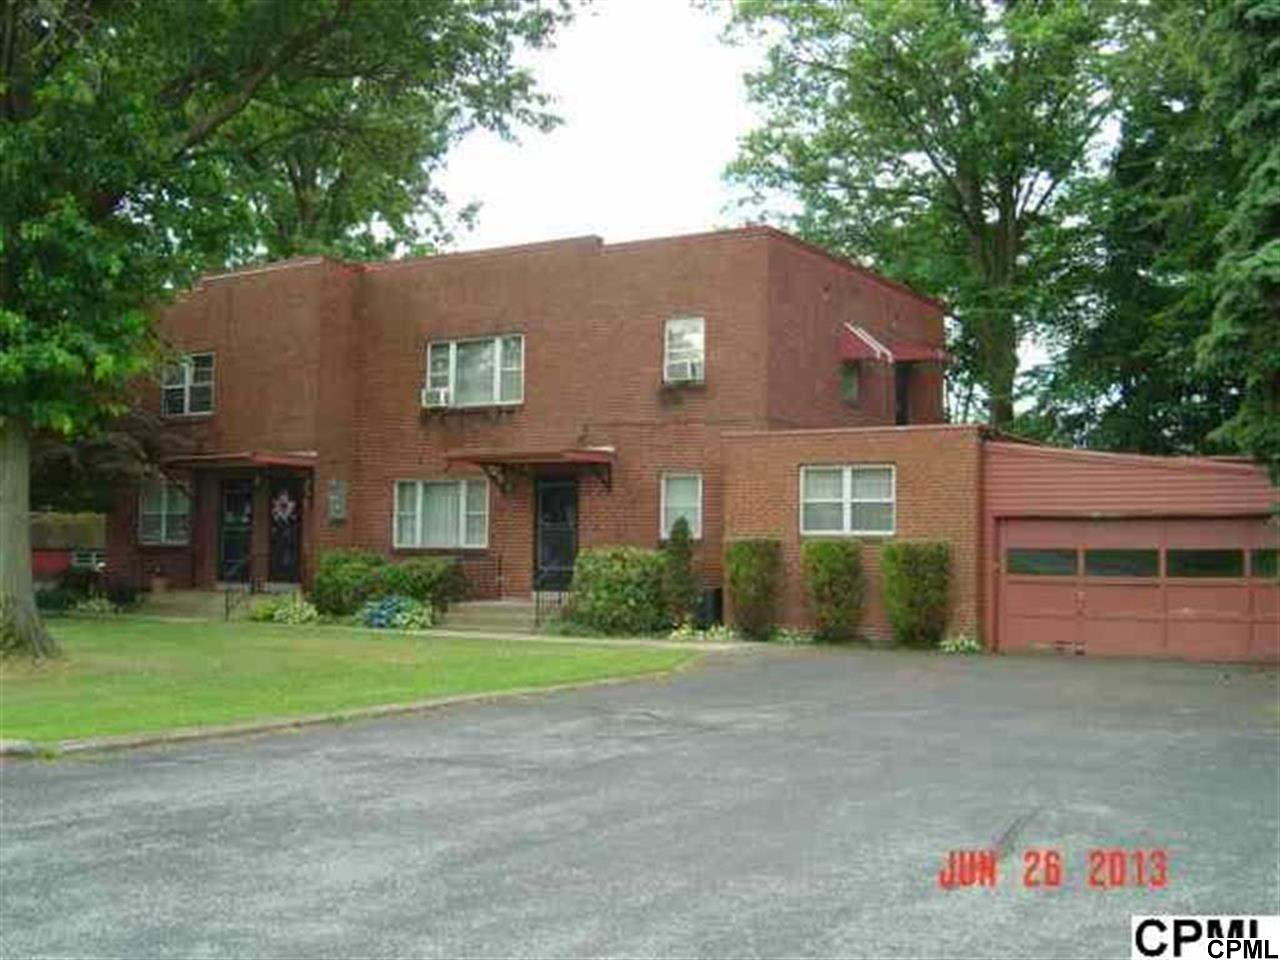 Rental Homes for Rent, ListingId:26797157, location: 25 Old Depot Road New Cumberland 17070